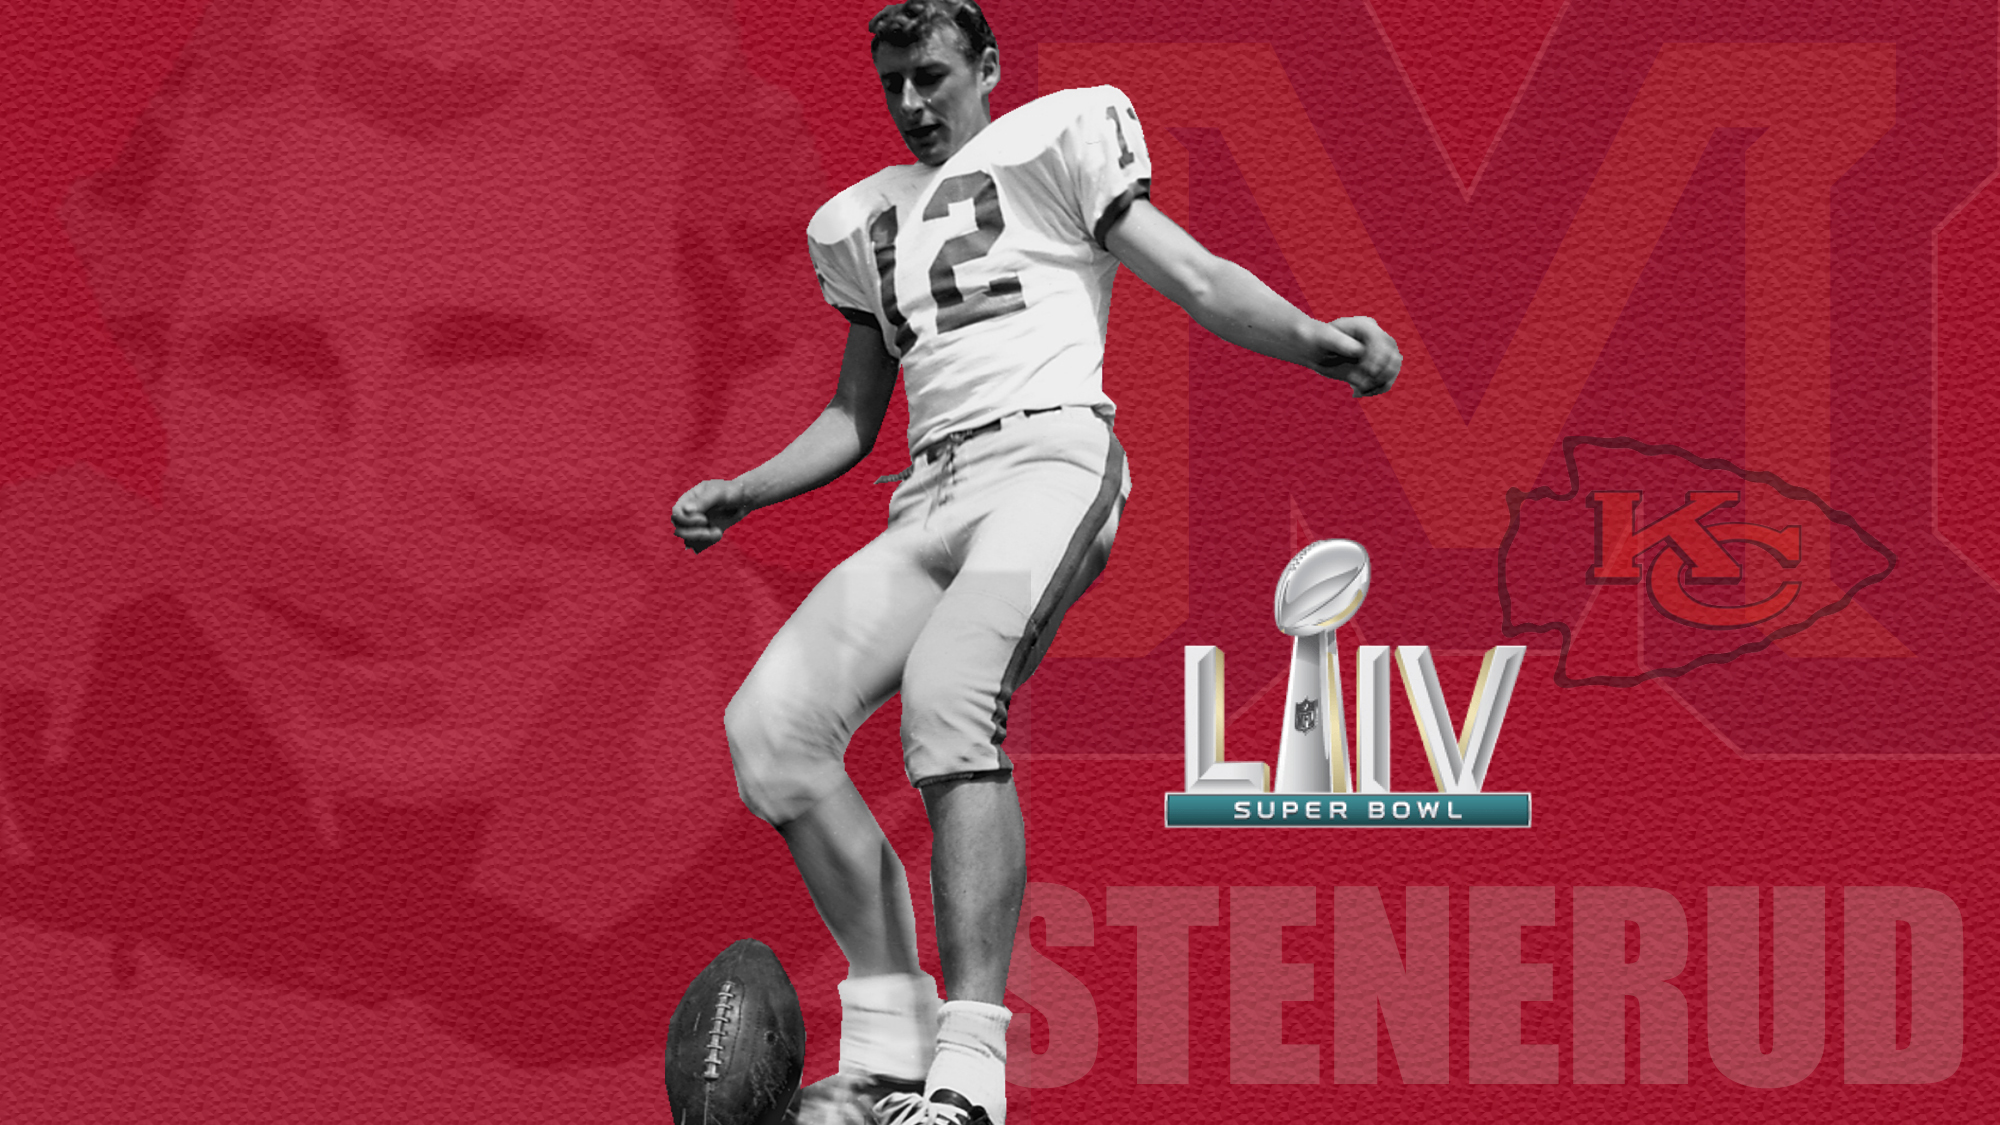 Former Bobcat Jan Stenerud, a Hero in Super Bowl IV, Named One of NFL's 100 Best All-Time Players